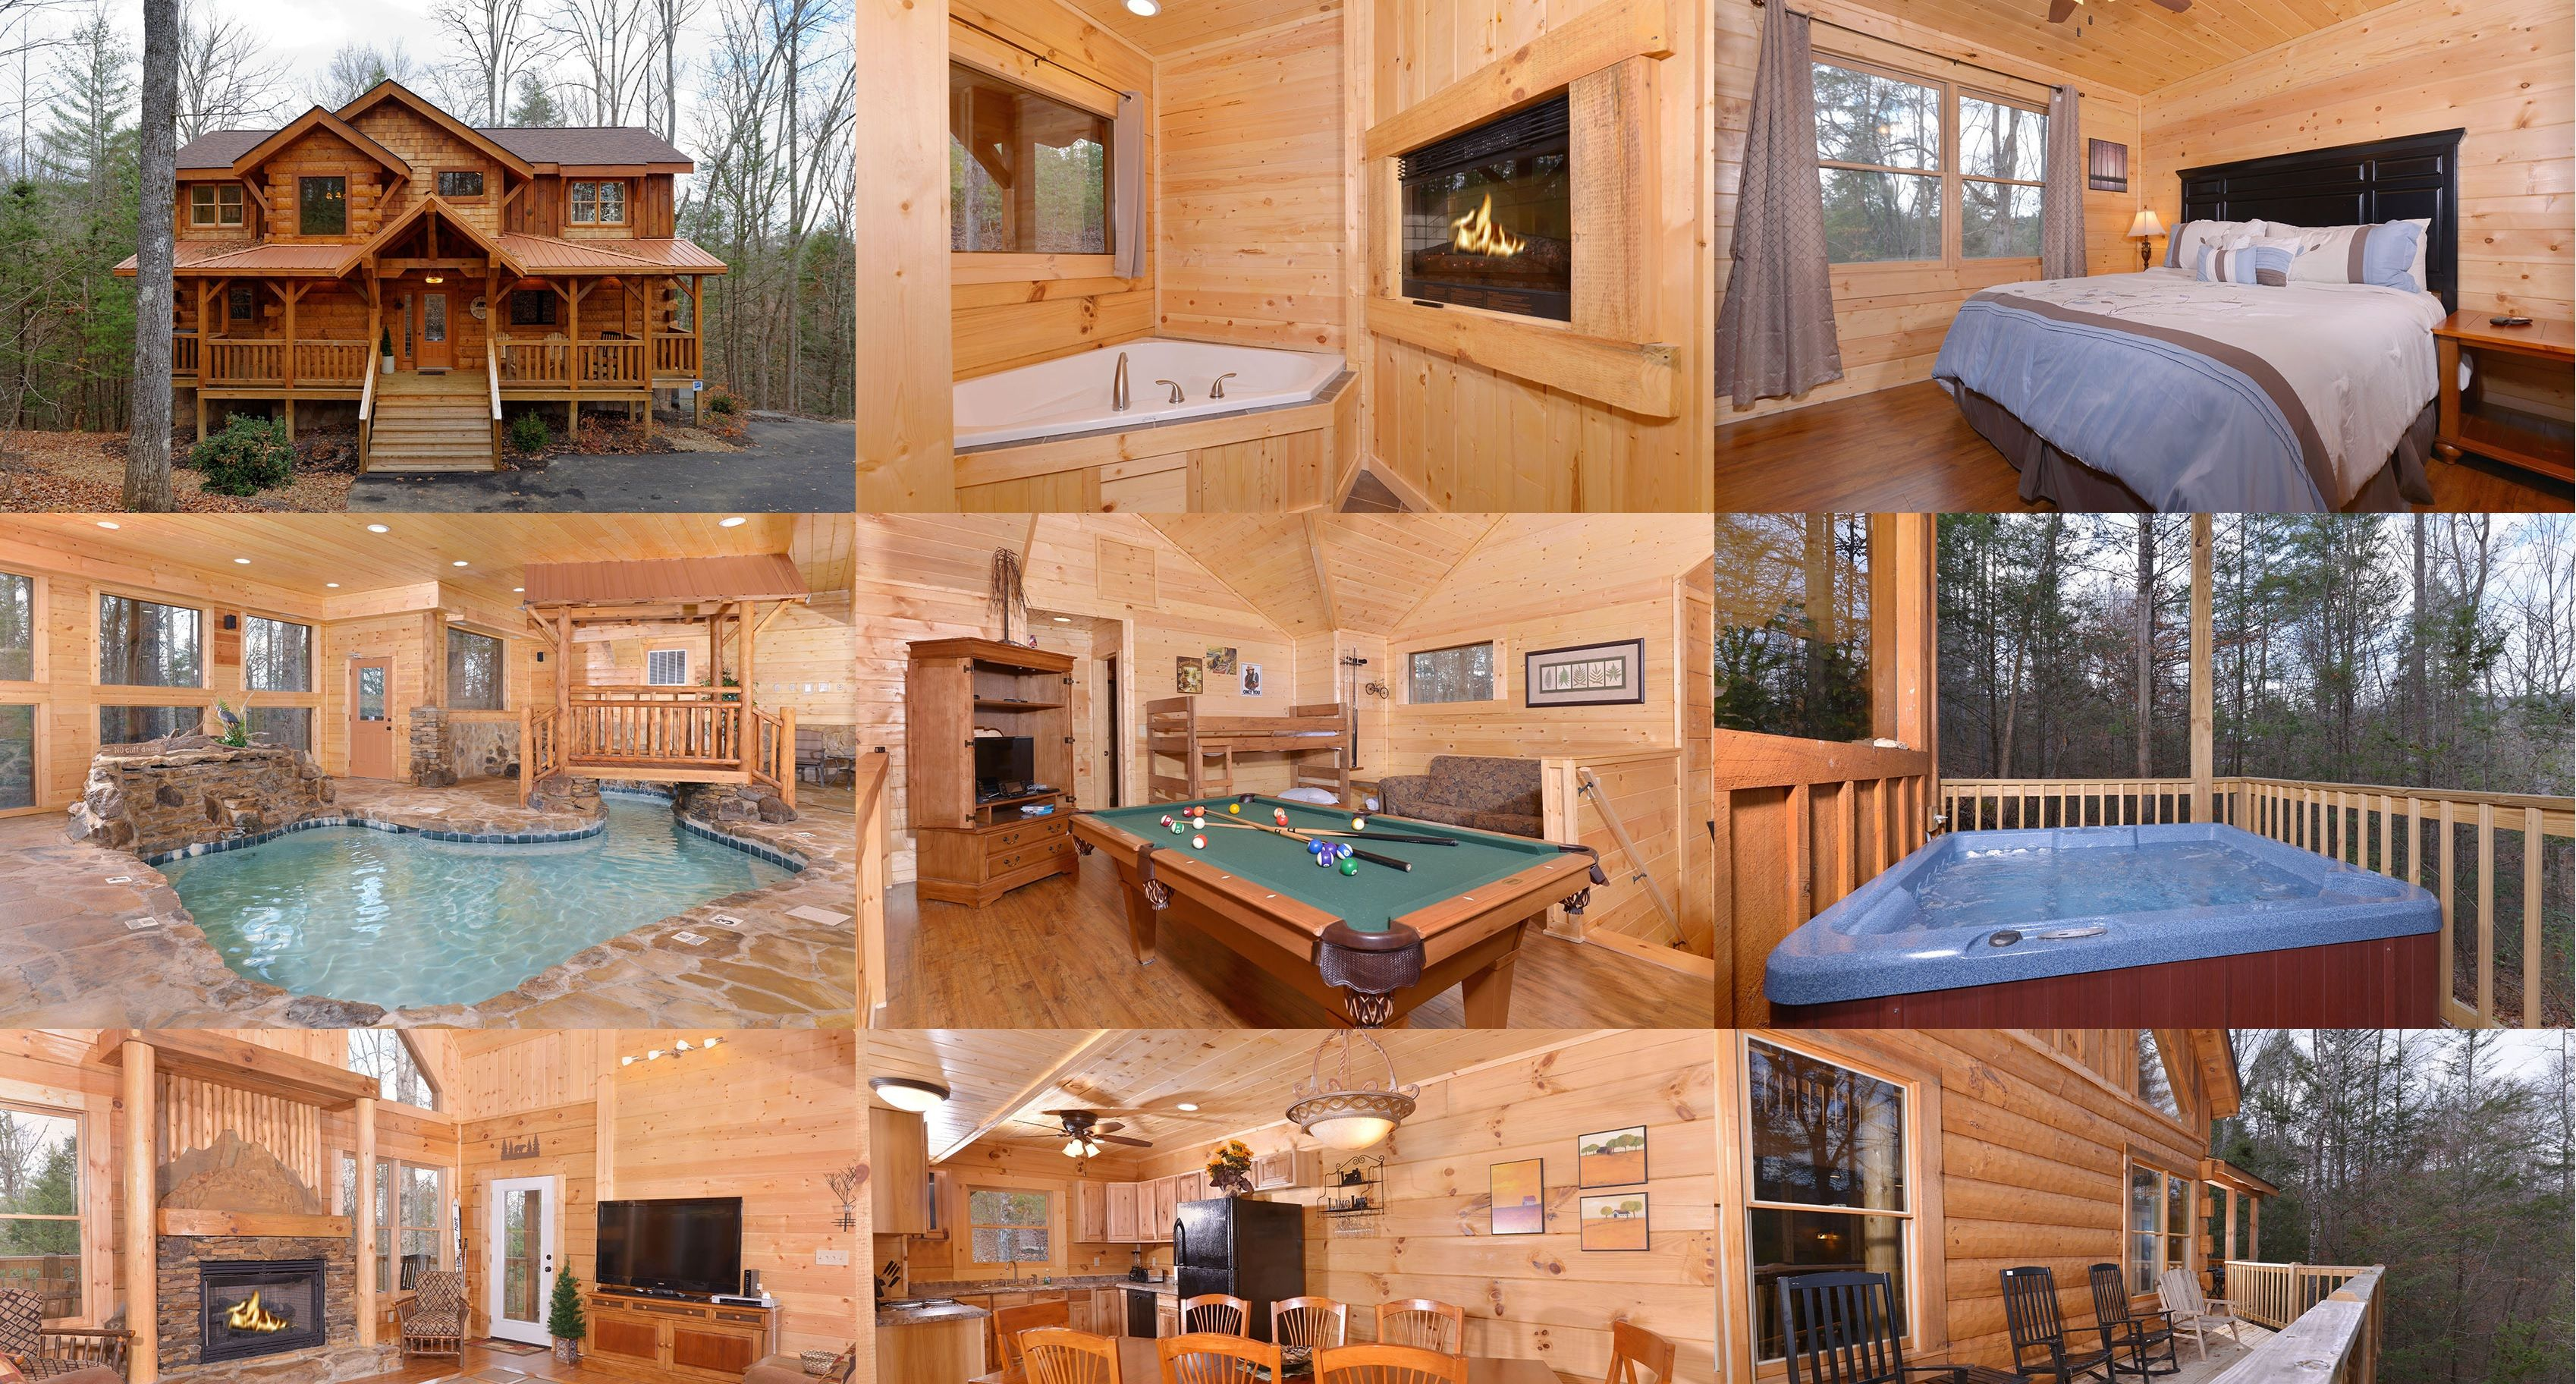 and rental rent living gatlinburg only amenities can inside cabins tn found cabin amazing room rentals large find pigeon forge our for kitchen in